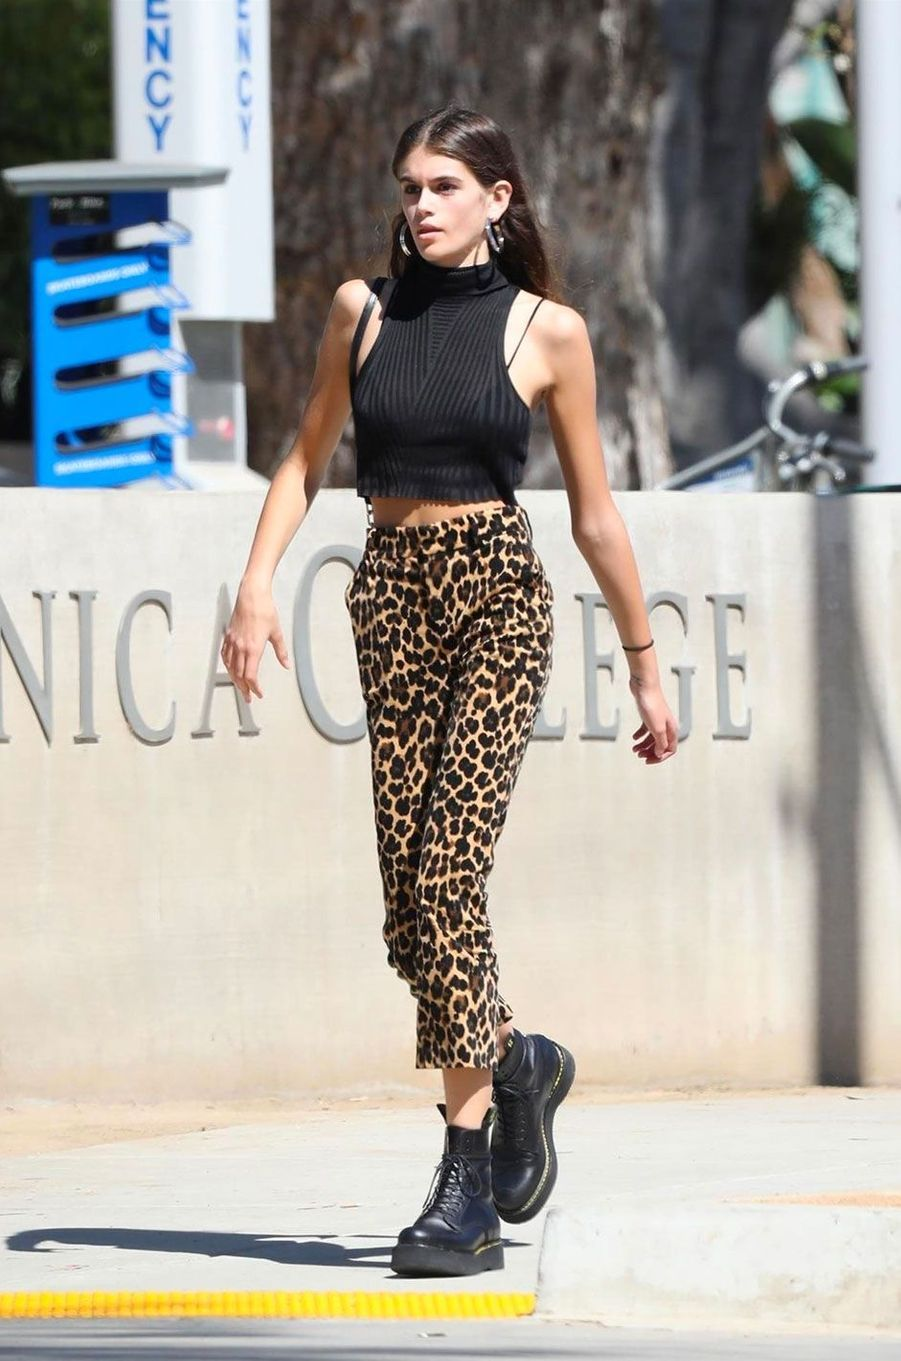 People Style : le casual chic selon Kaia Gerber